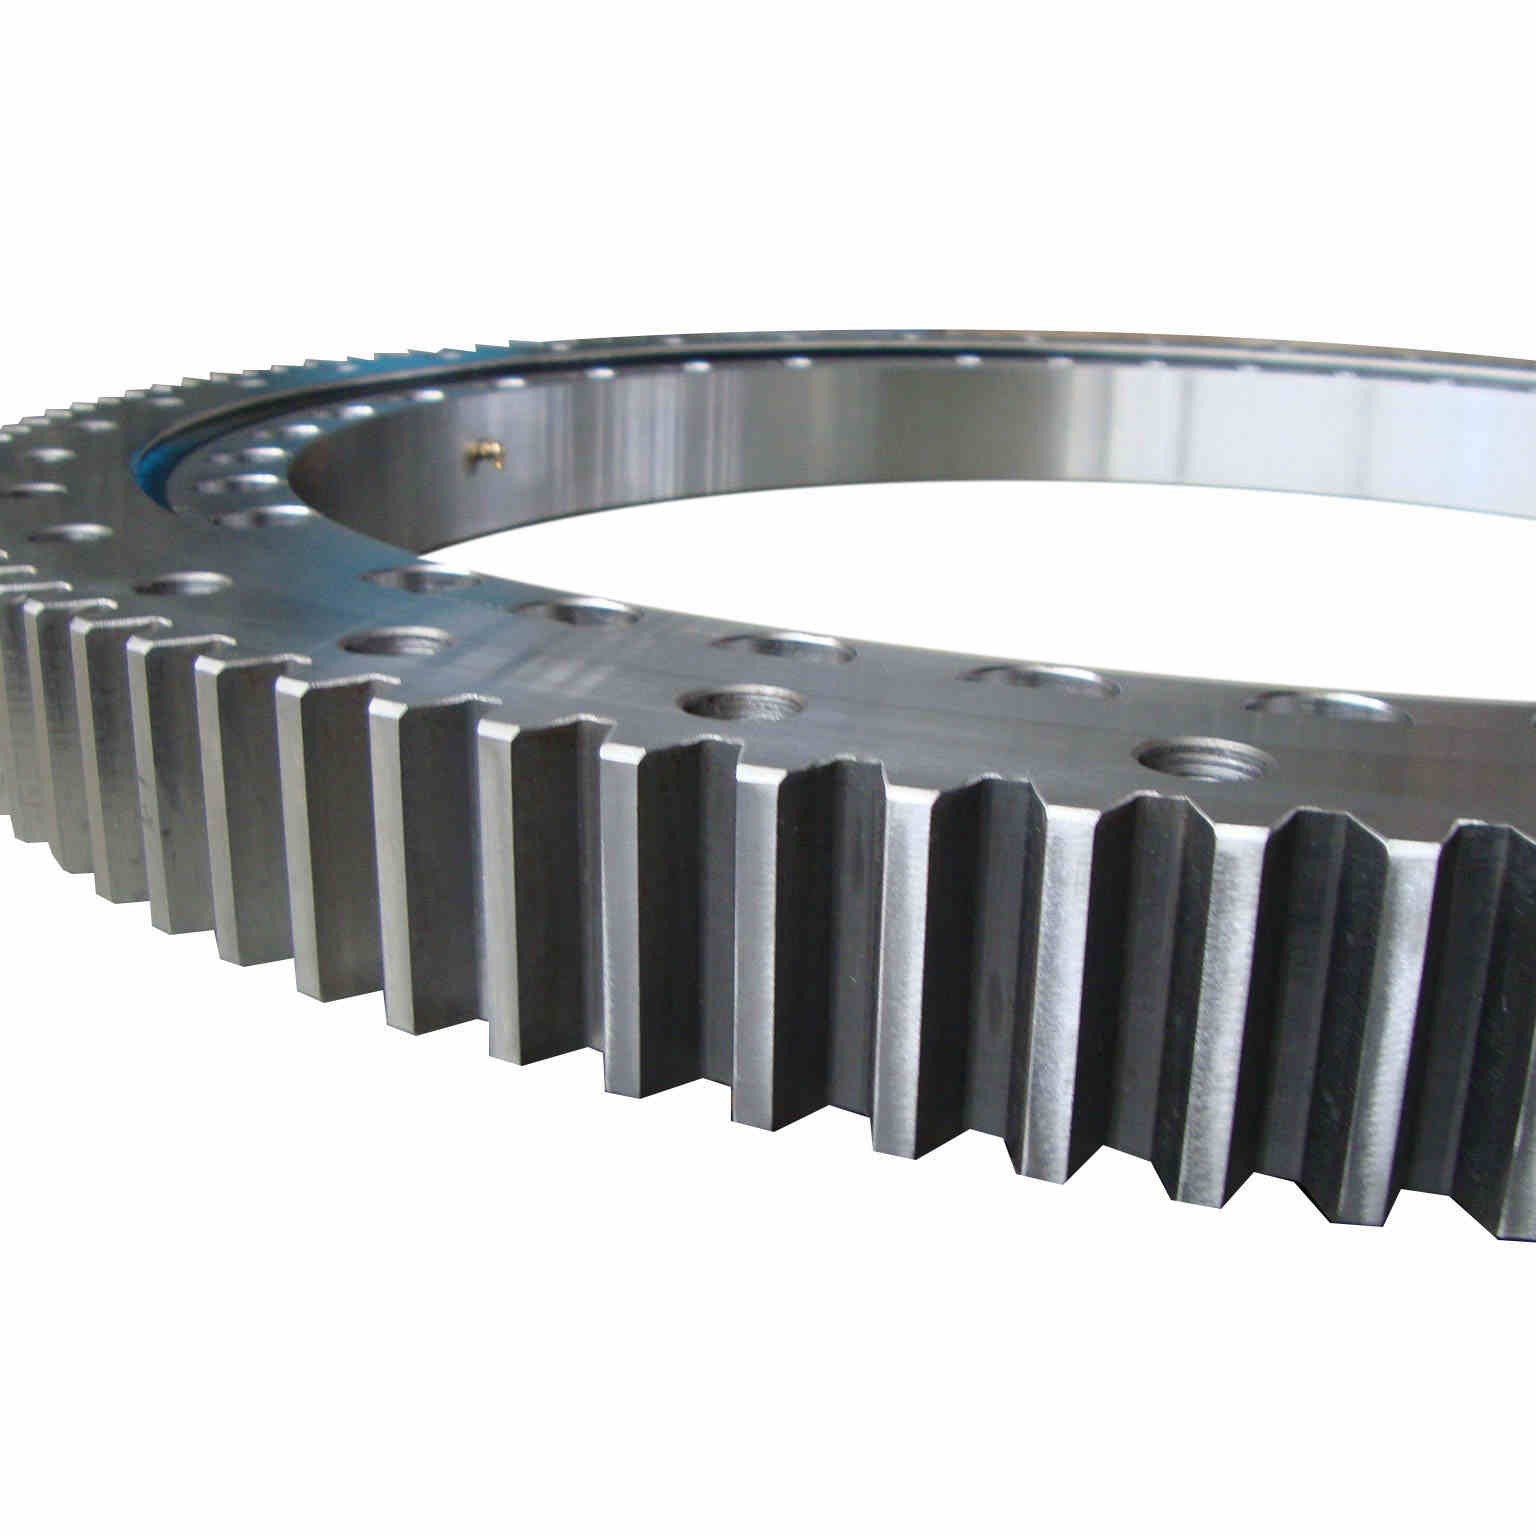 Crane Slewing Bearing For Boom Truck Manufacturers, Crane Slewing Bearing For Boom Truck Factory, Supply Crane Slewing Bearing For Boom Truck